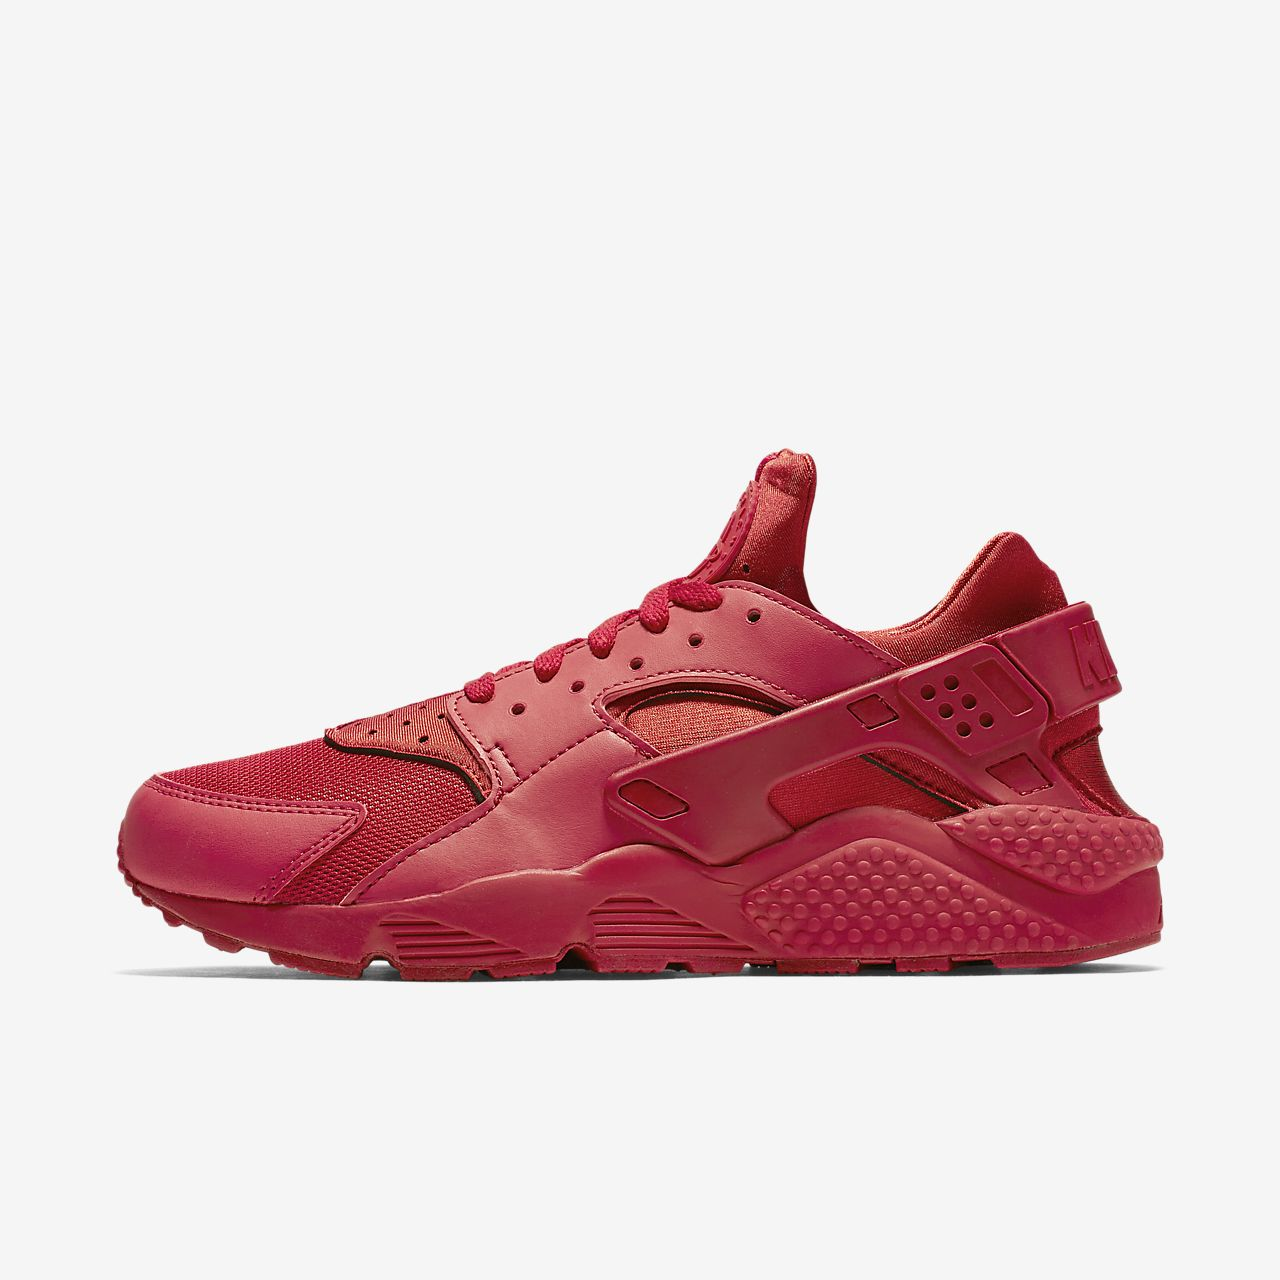 new product 1199d a9dc1 ... Nike Air Huarache Men s Shoe